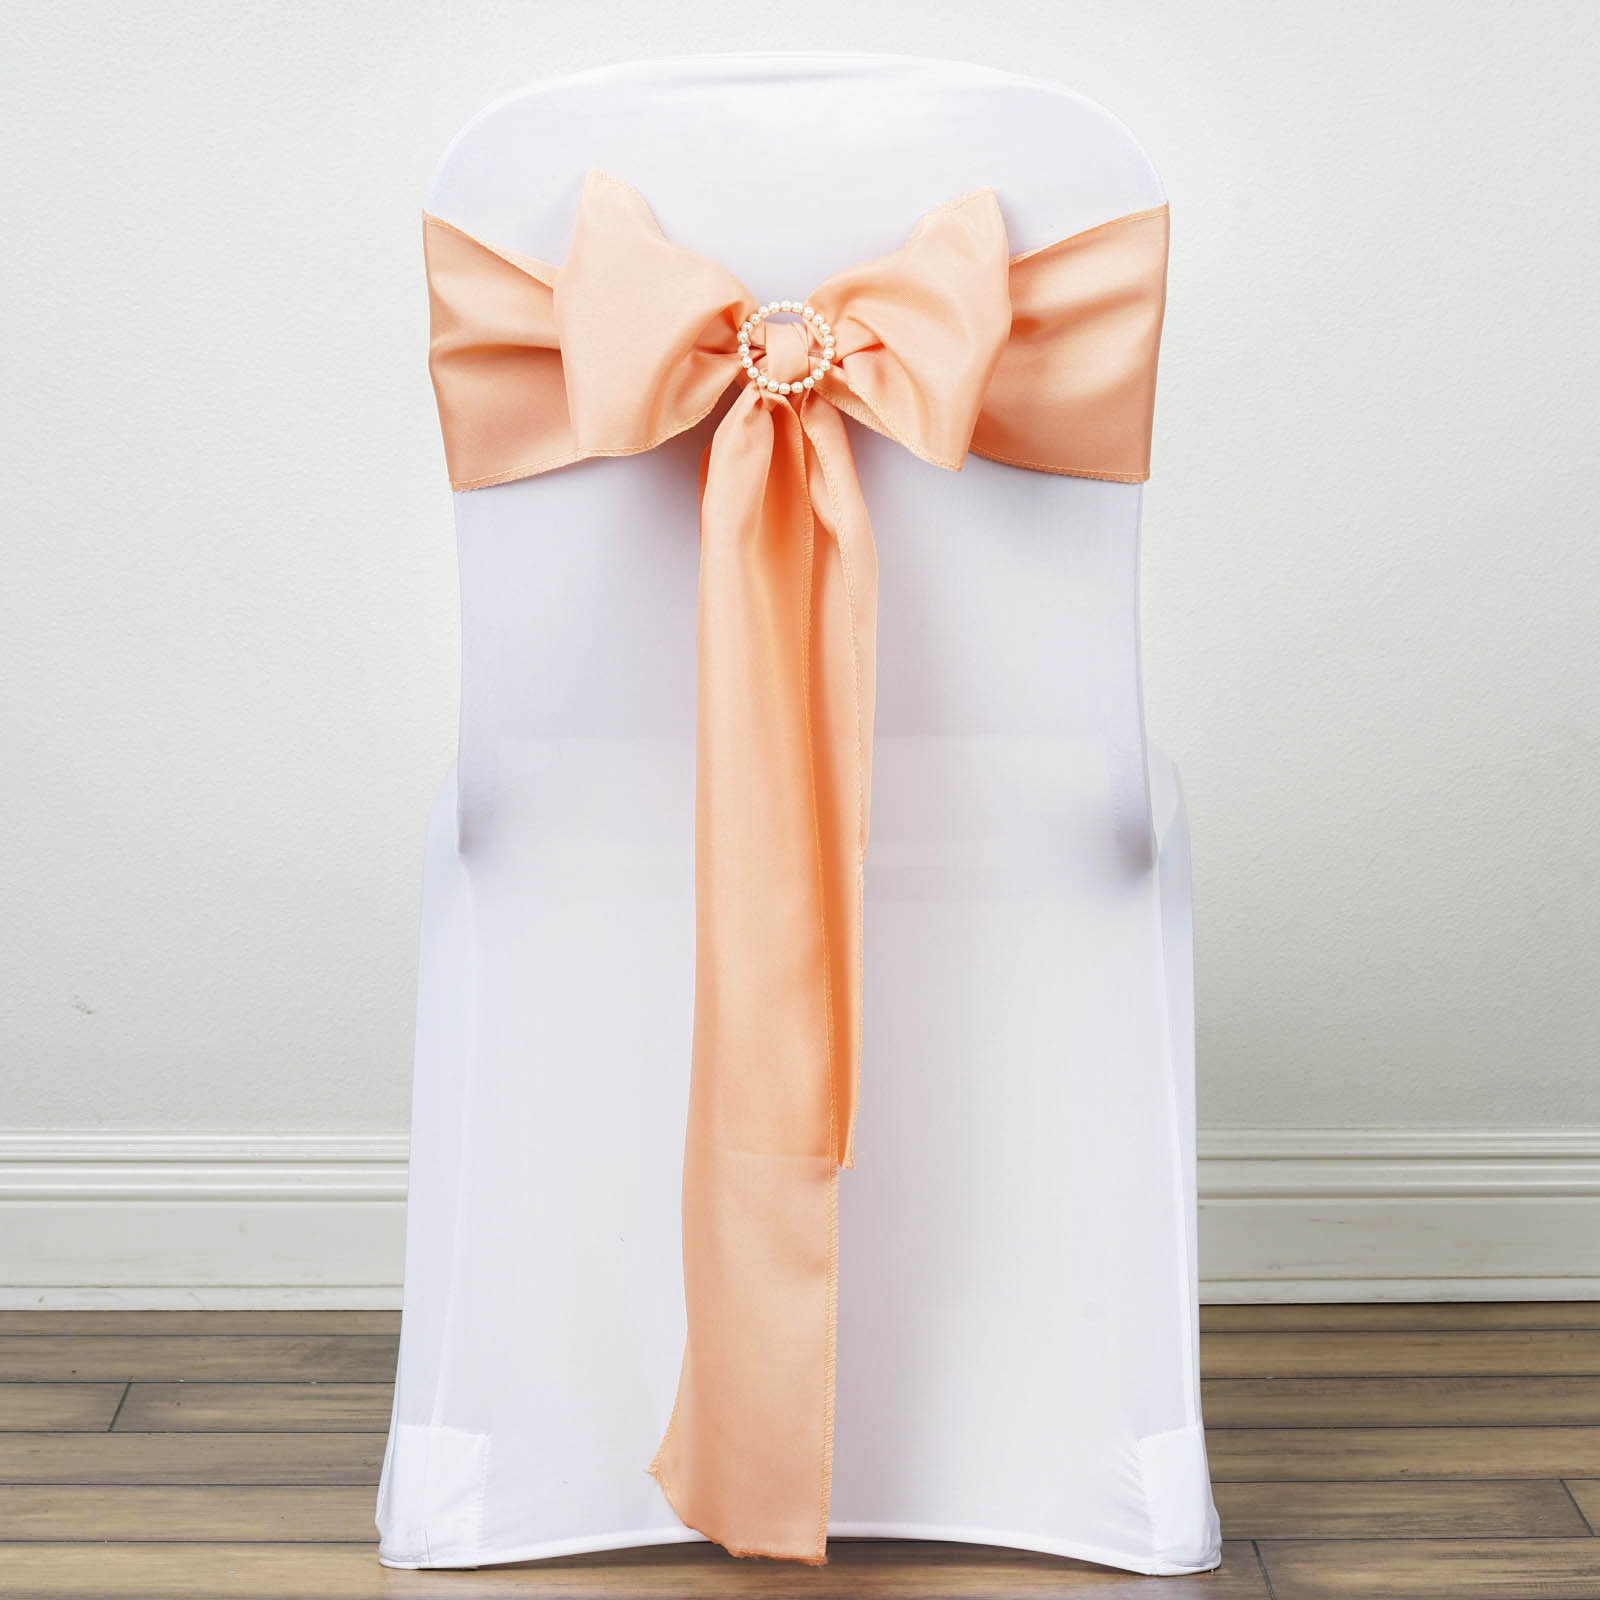 wedding chair covers with bows toddler soft chairs 50 polyester sashes ties party ceremony